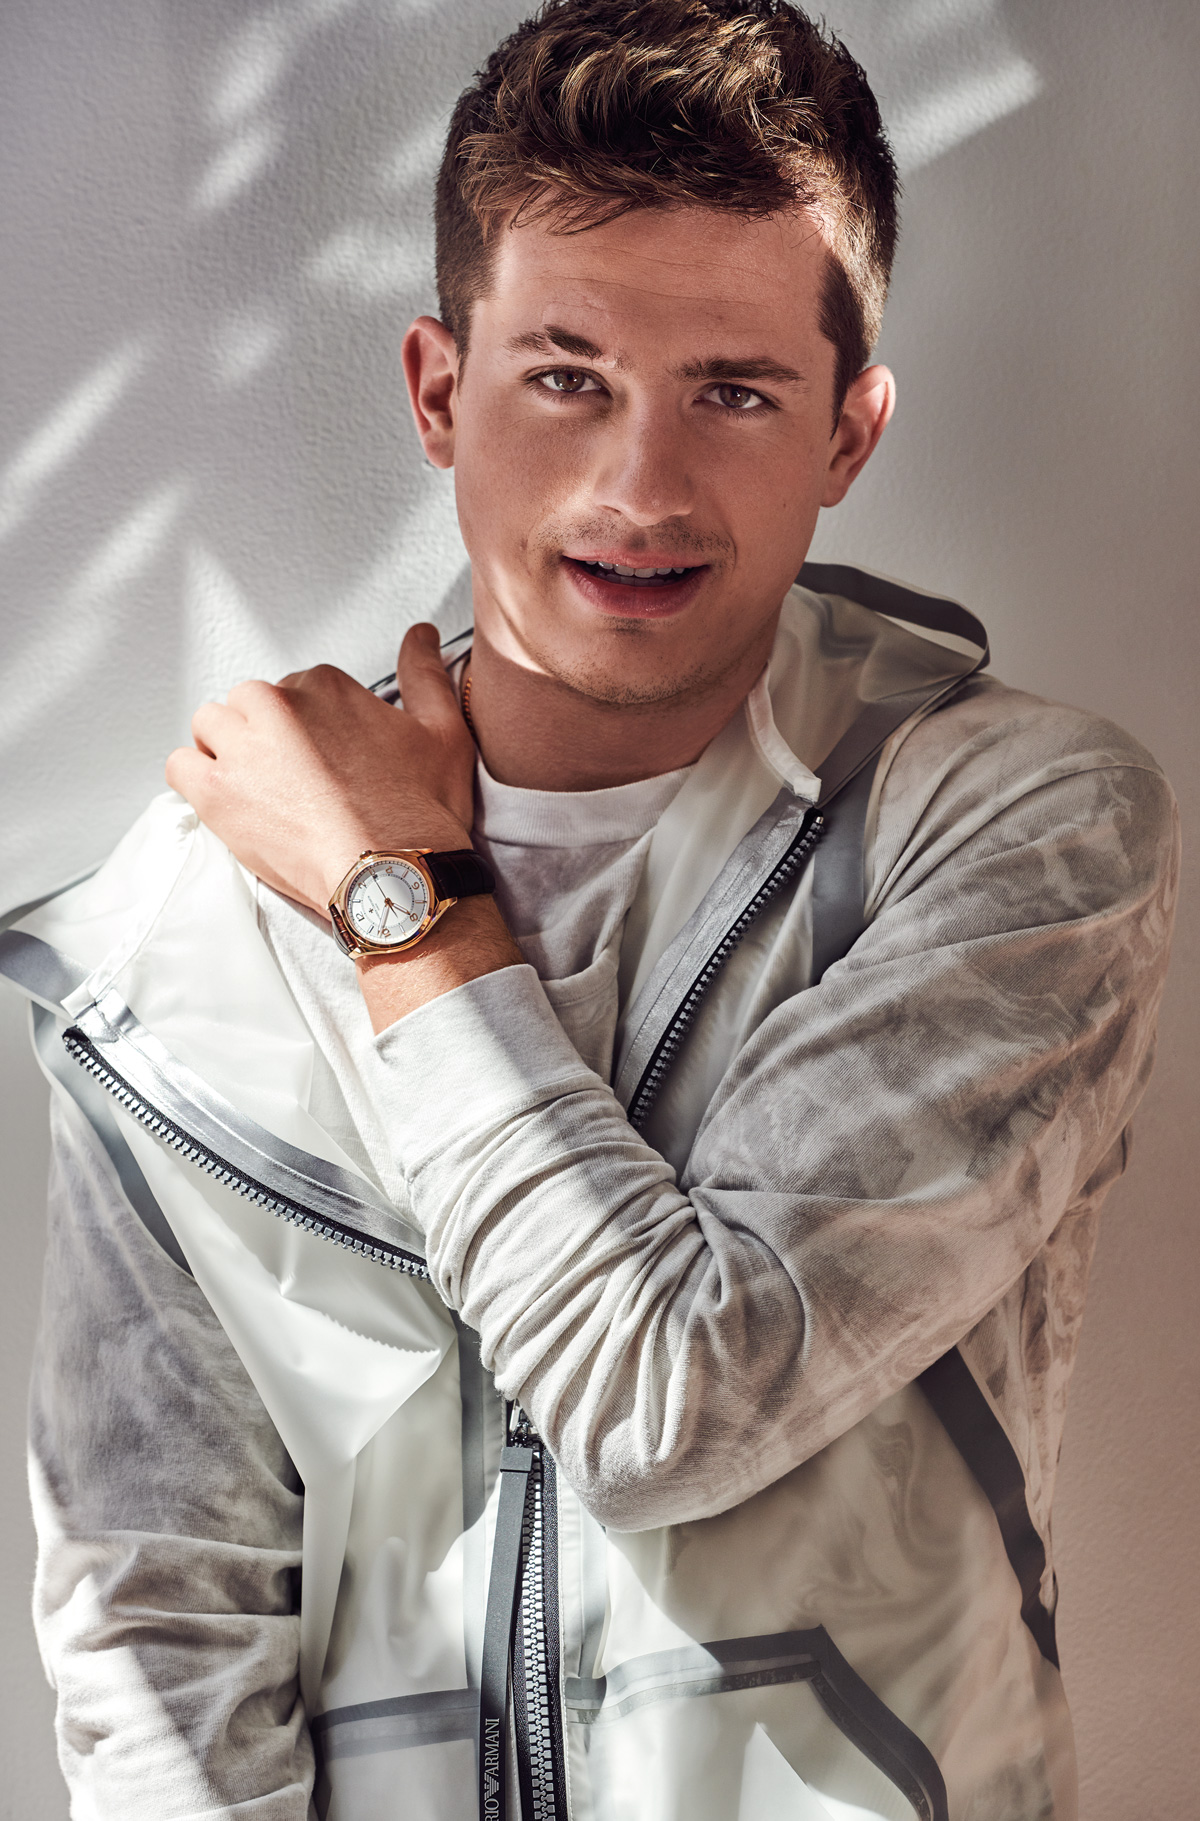 Charlie Puth is wearing the Vacheron Constantin Fiftysix Self-Winding watch in pink gold, a tank top from Emporio Armani, and a sweater from John Elliott